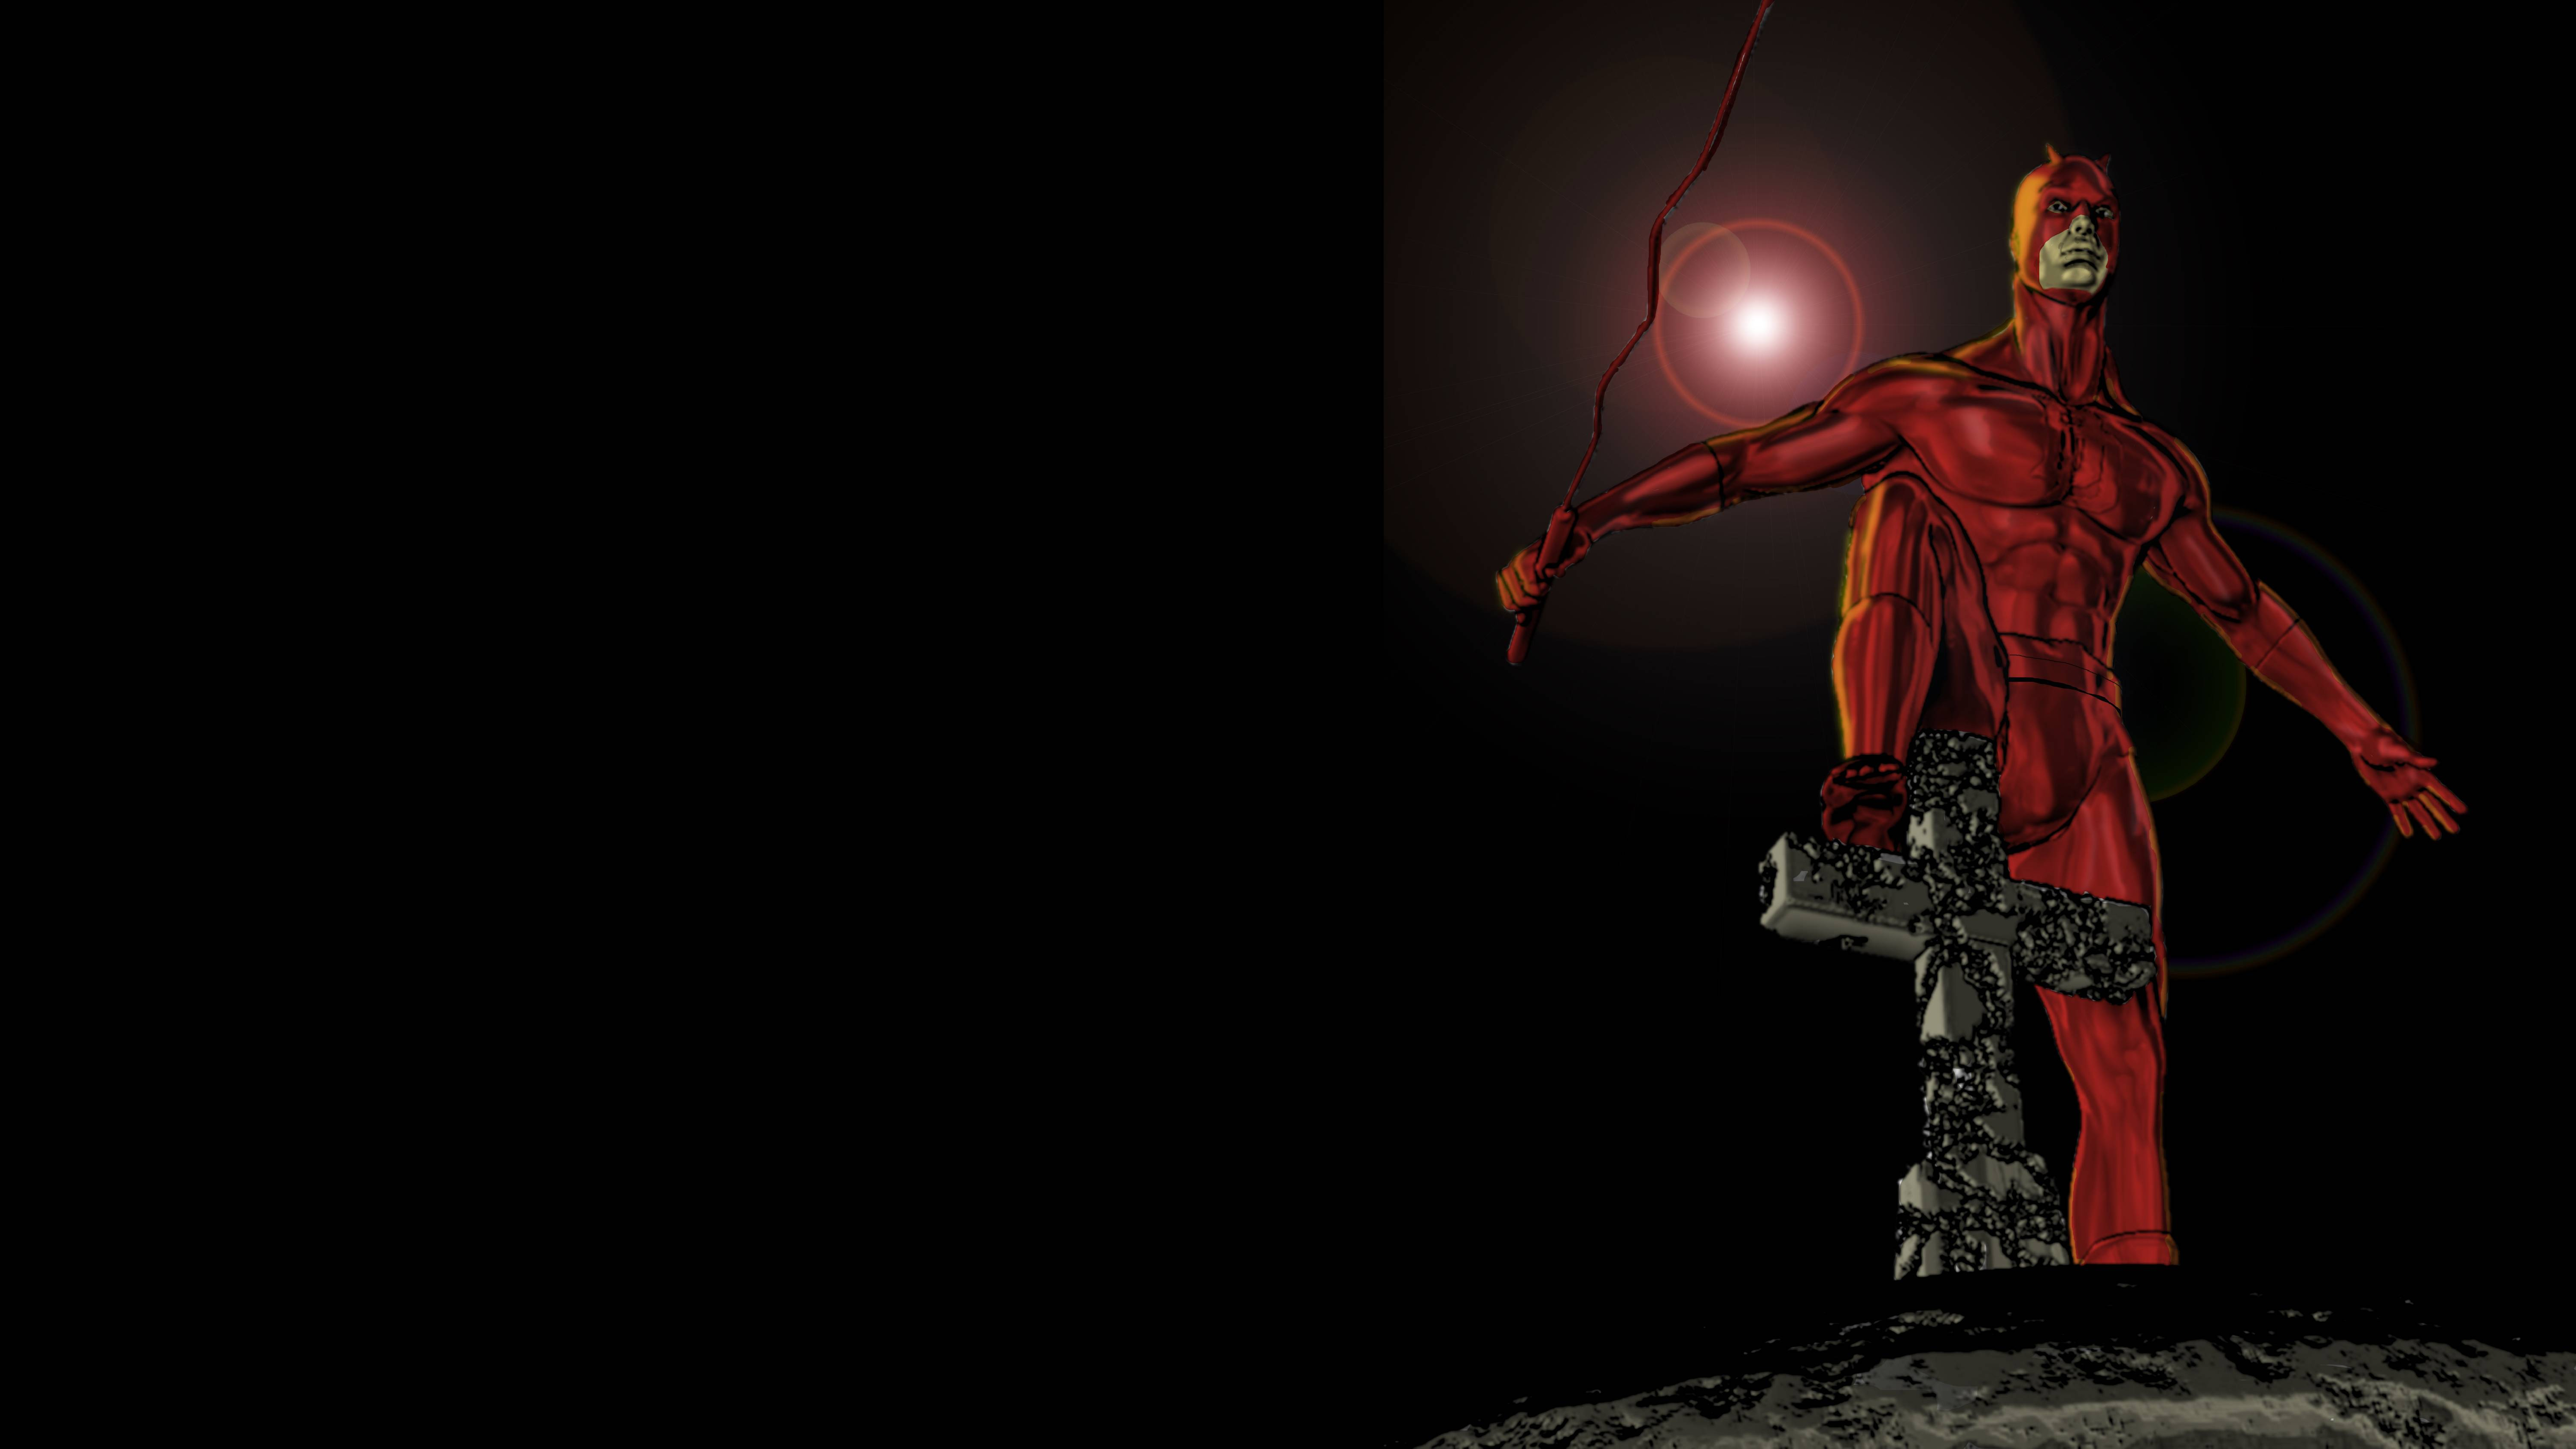 Comics Daredevil Wallpapers 6000x3375 px Free Download